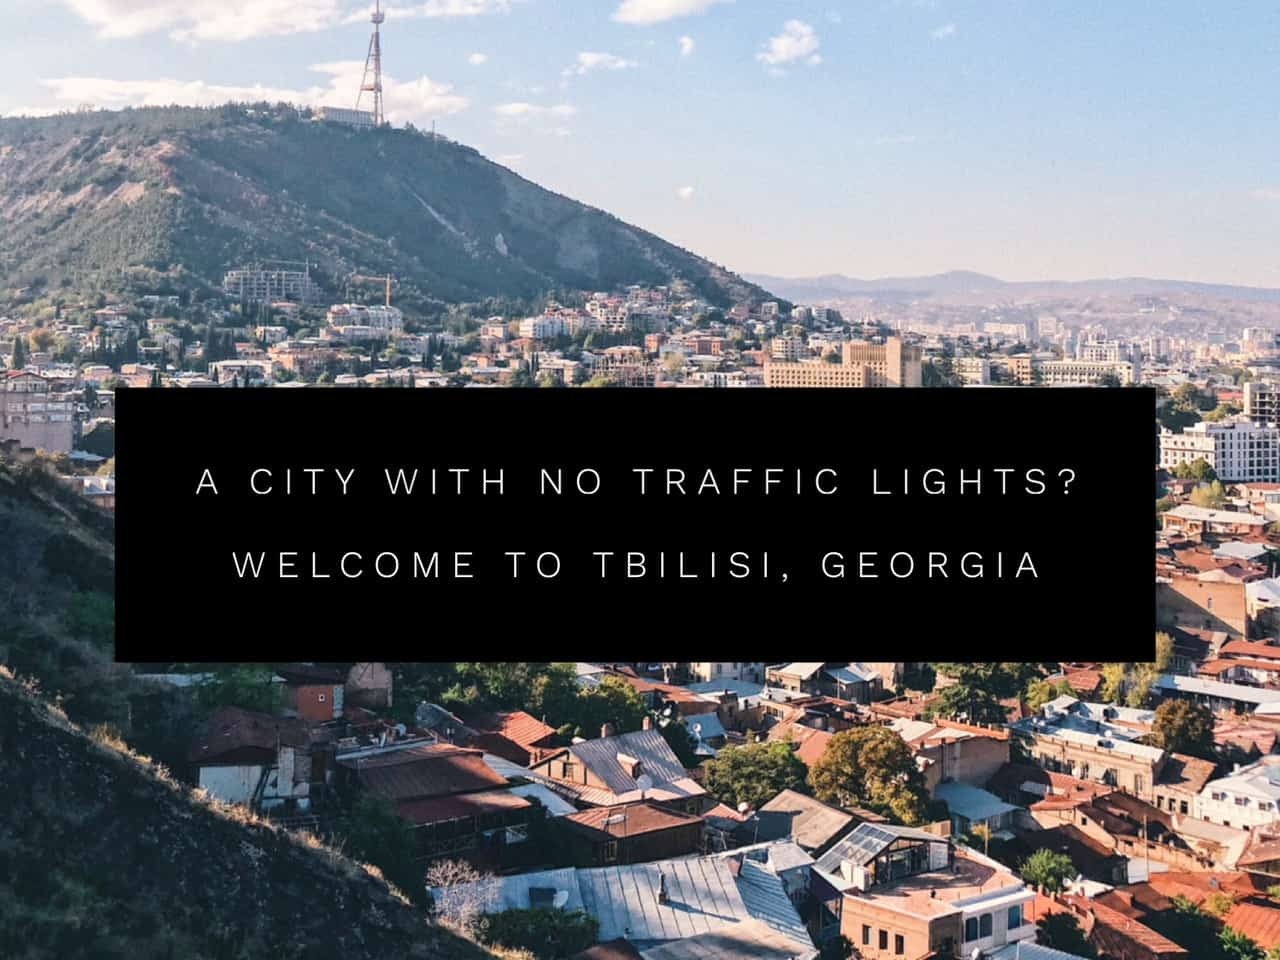 a city with no traffic lights - travel to Tbilisi, Georgia